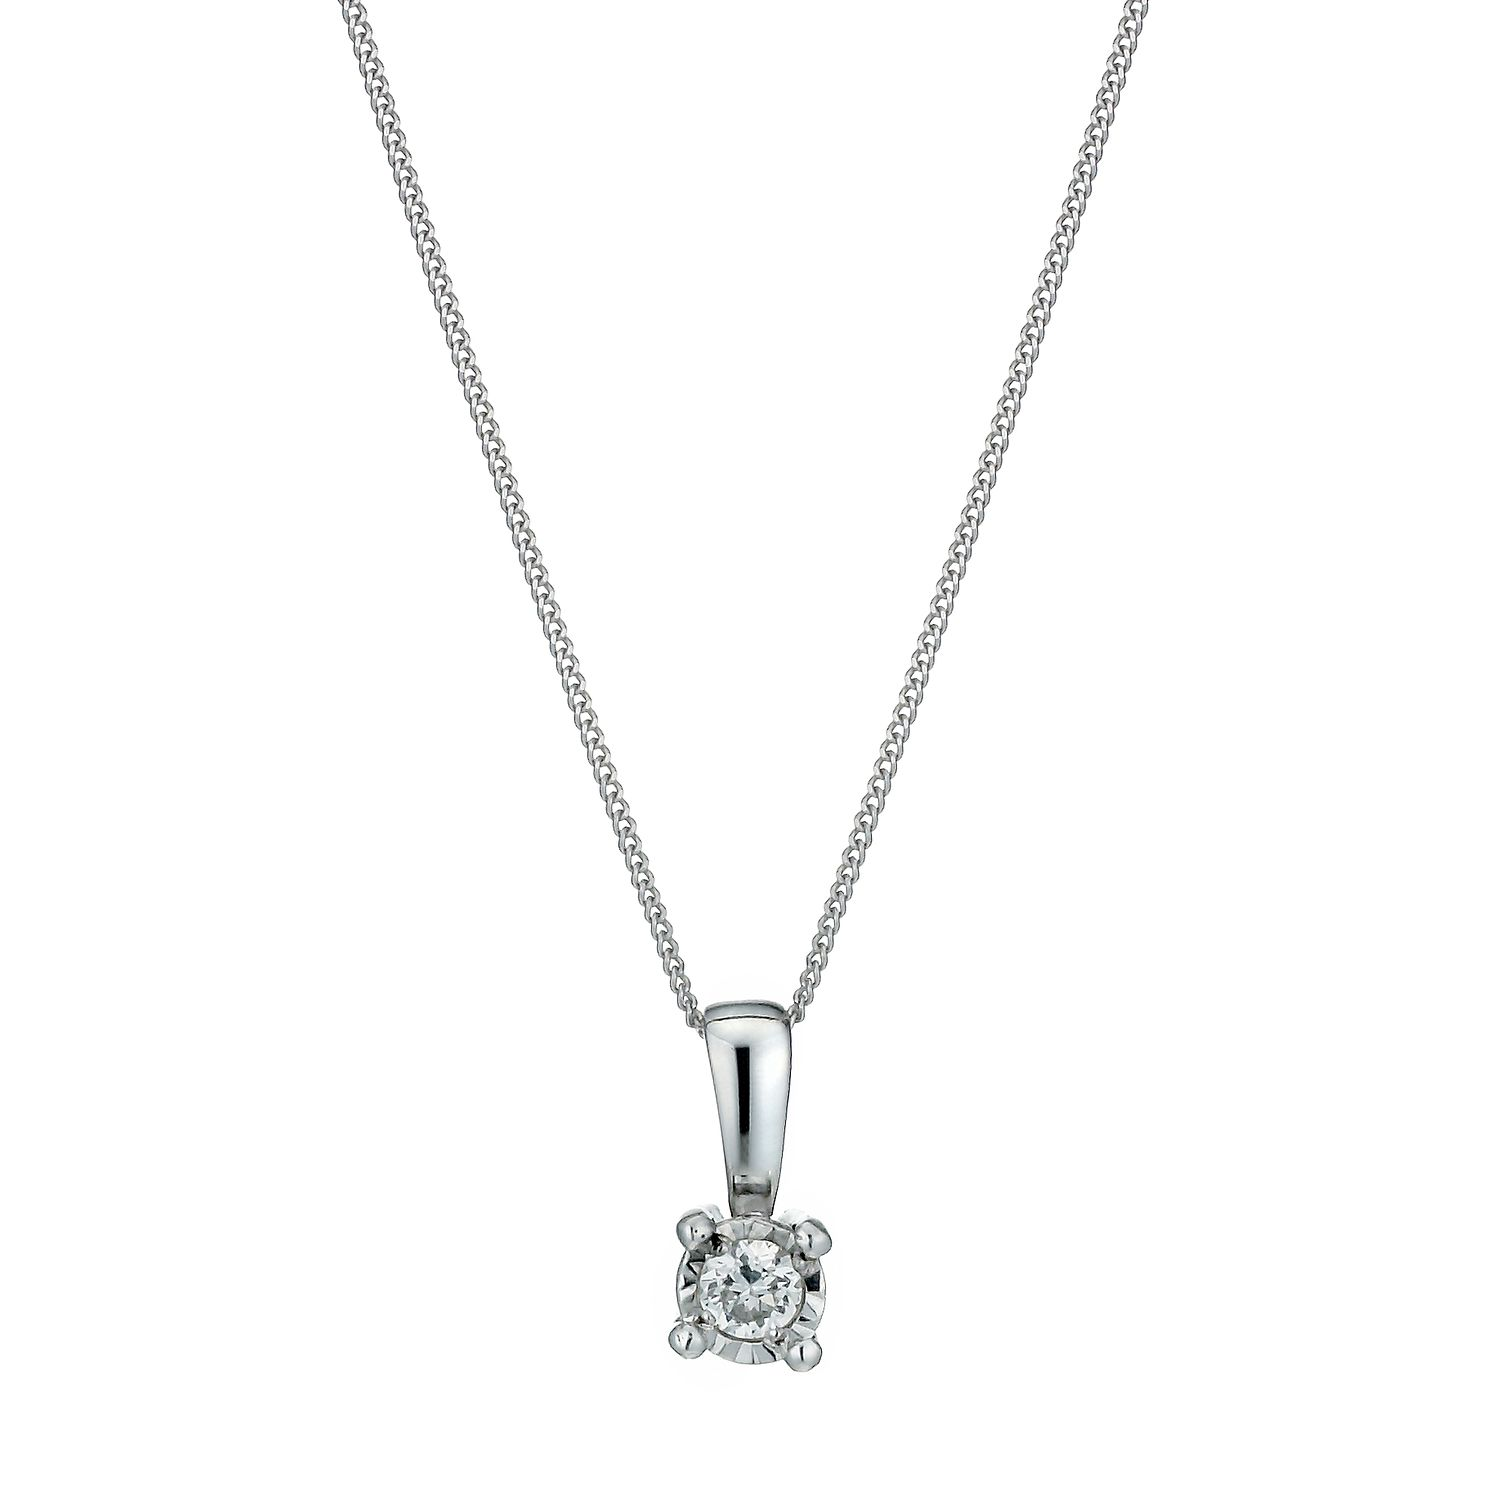 9ct White Gold Diamond Pendant Necklace - Product number 1020935